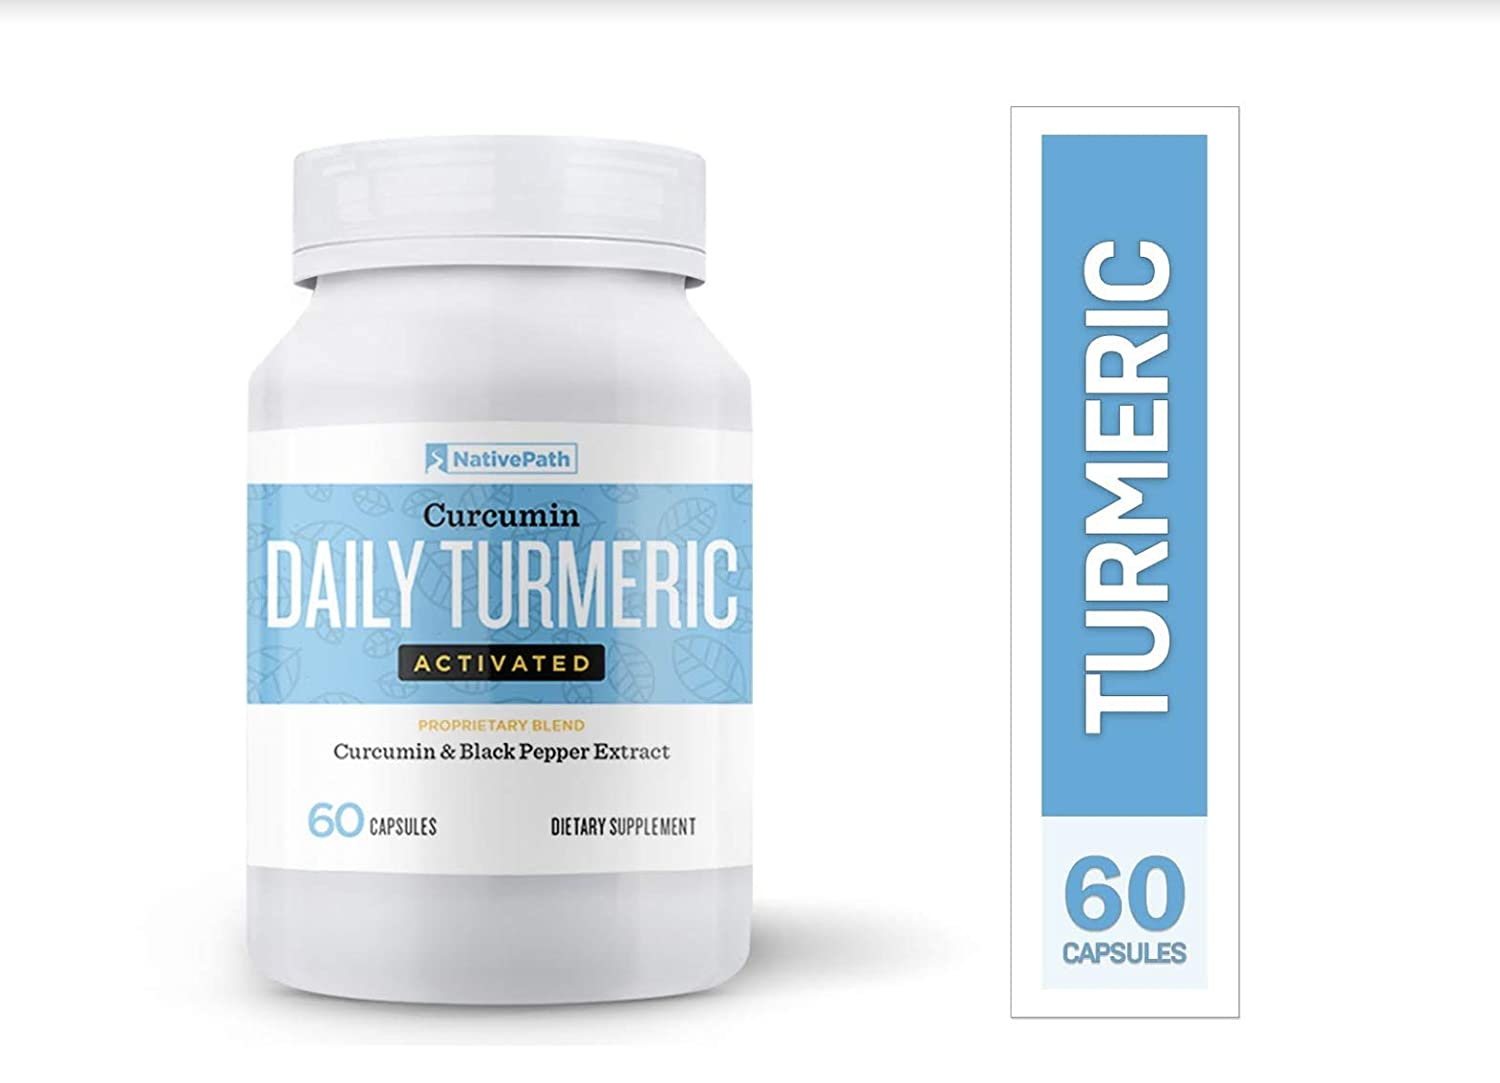 NativePath Daily Turmeric Activated Curcumin Black Pepper Extract, Anti-Inflammatory Capsules, Provides Joint Relief and Supports Your Immune System, Mood, Memory 3